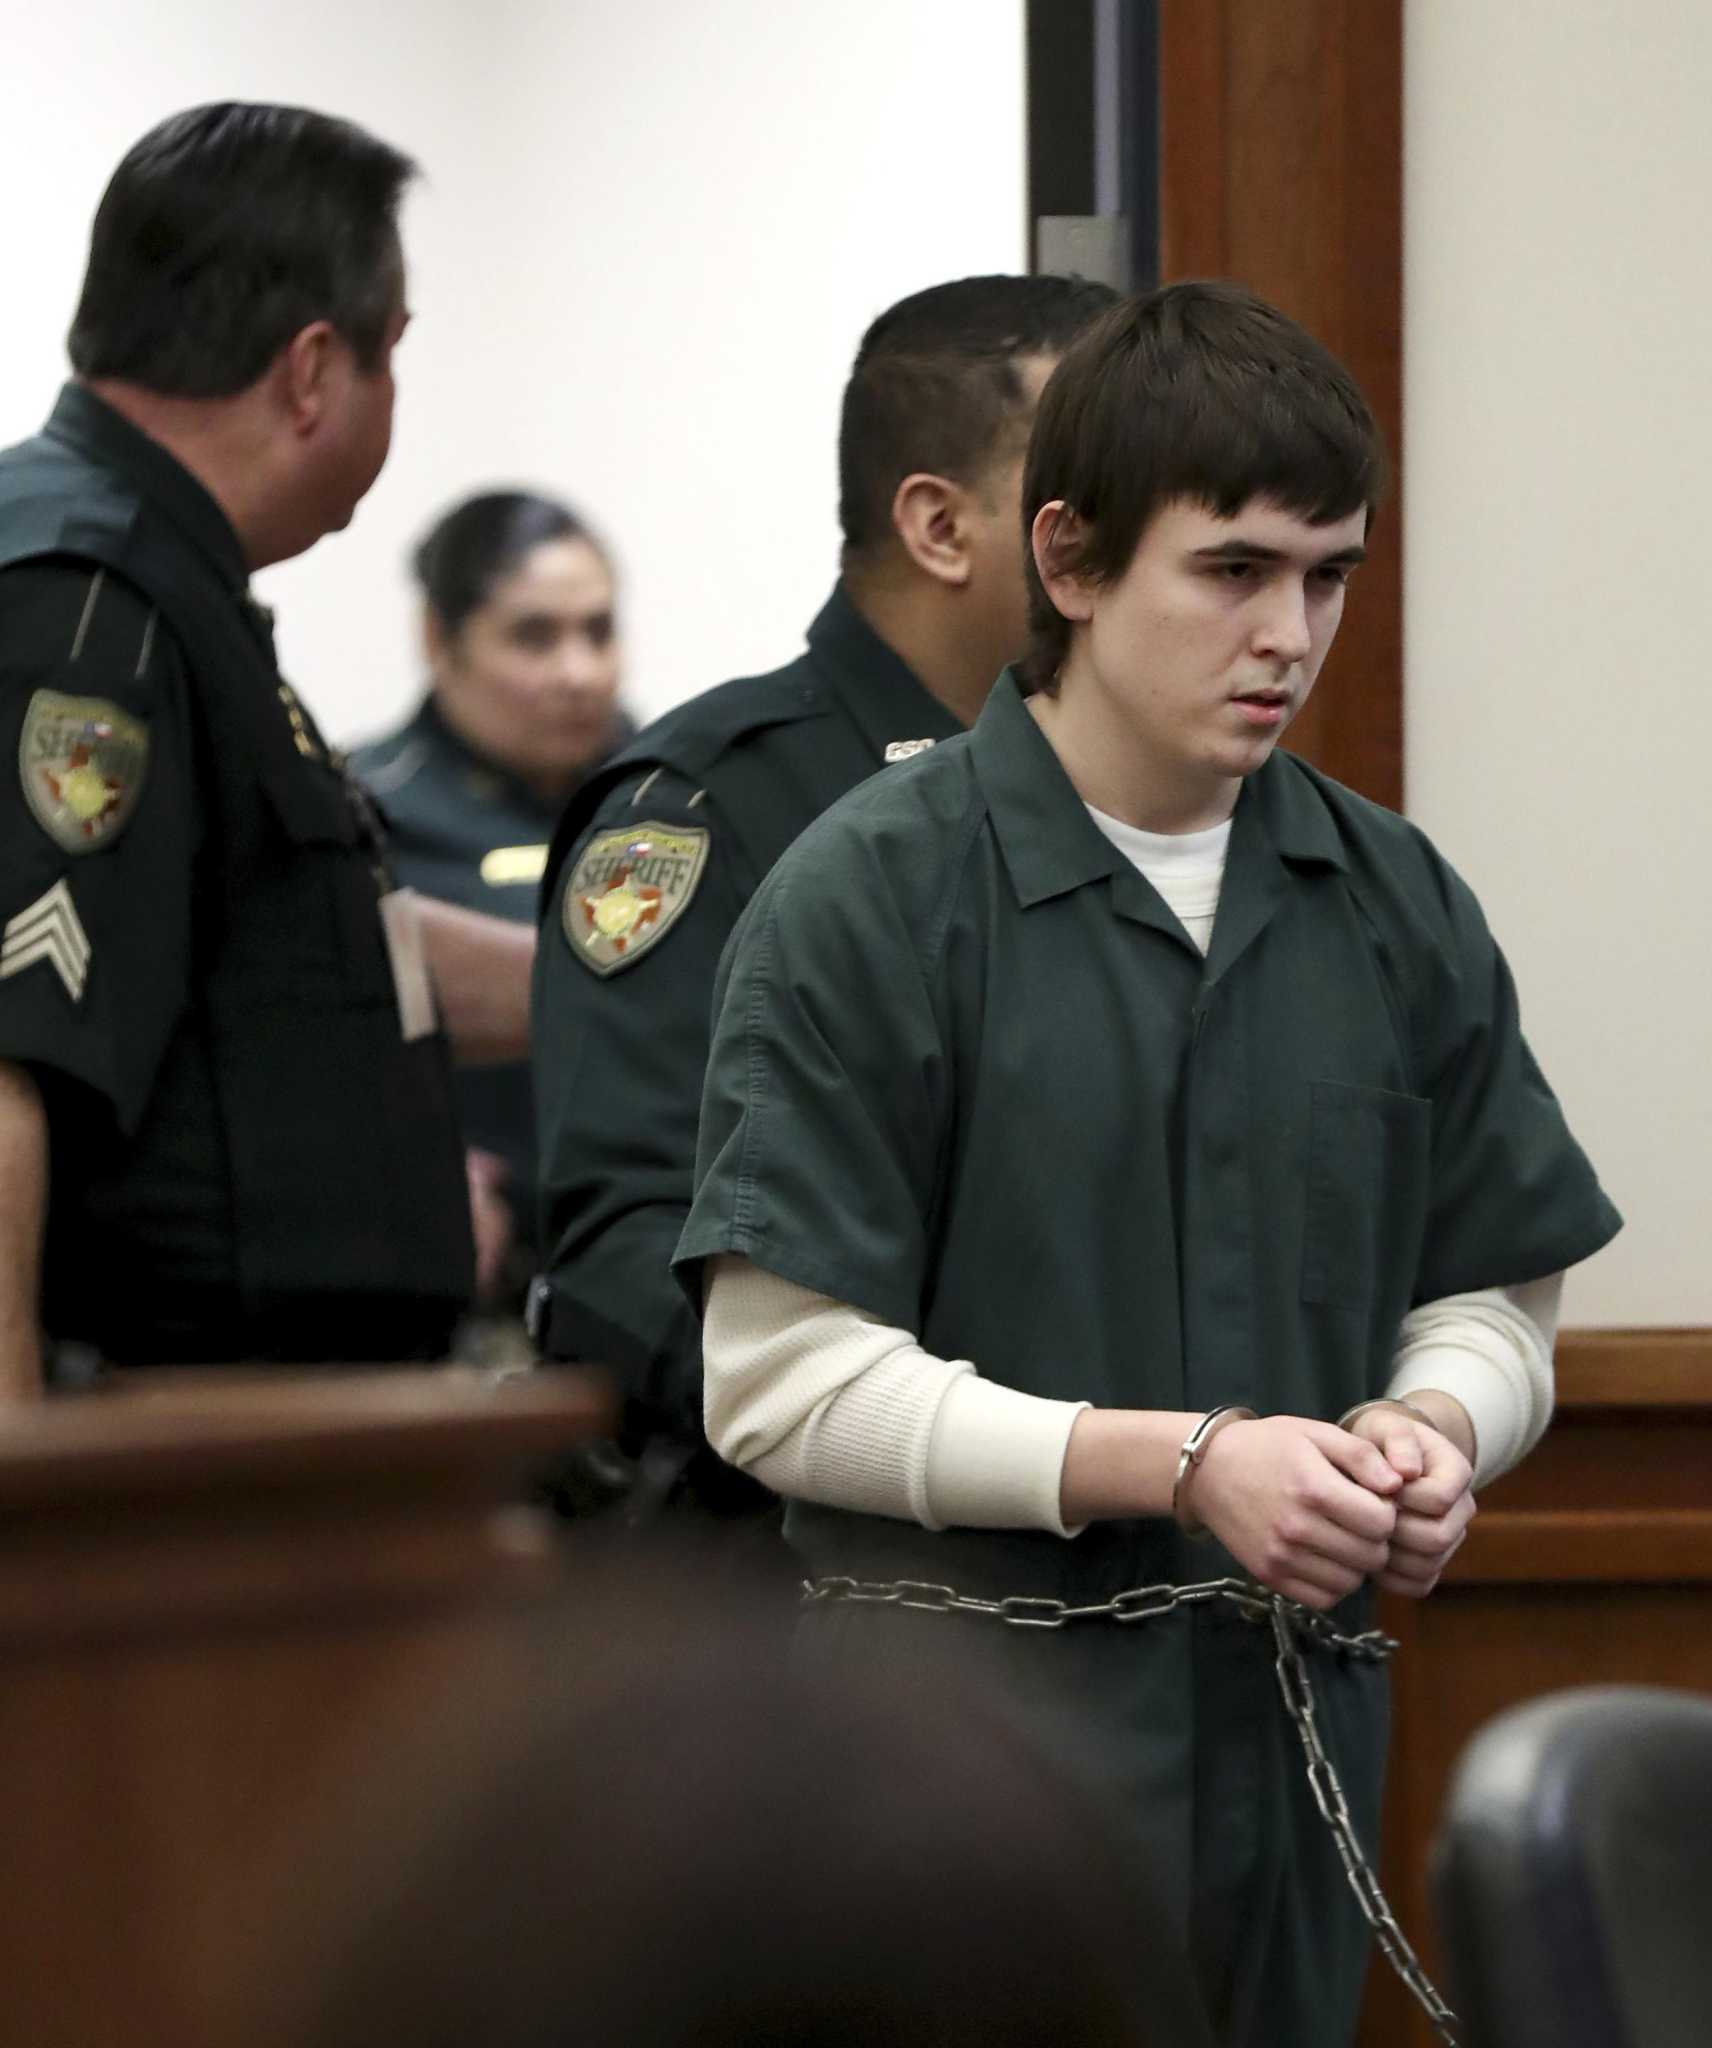 Accused Santa Fe High School Shooter Makes First Public